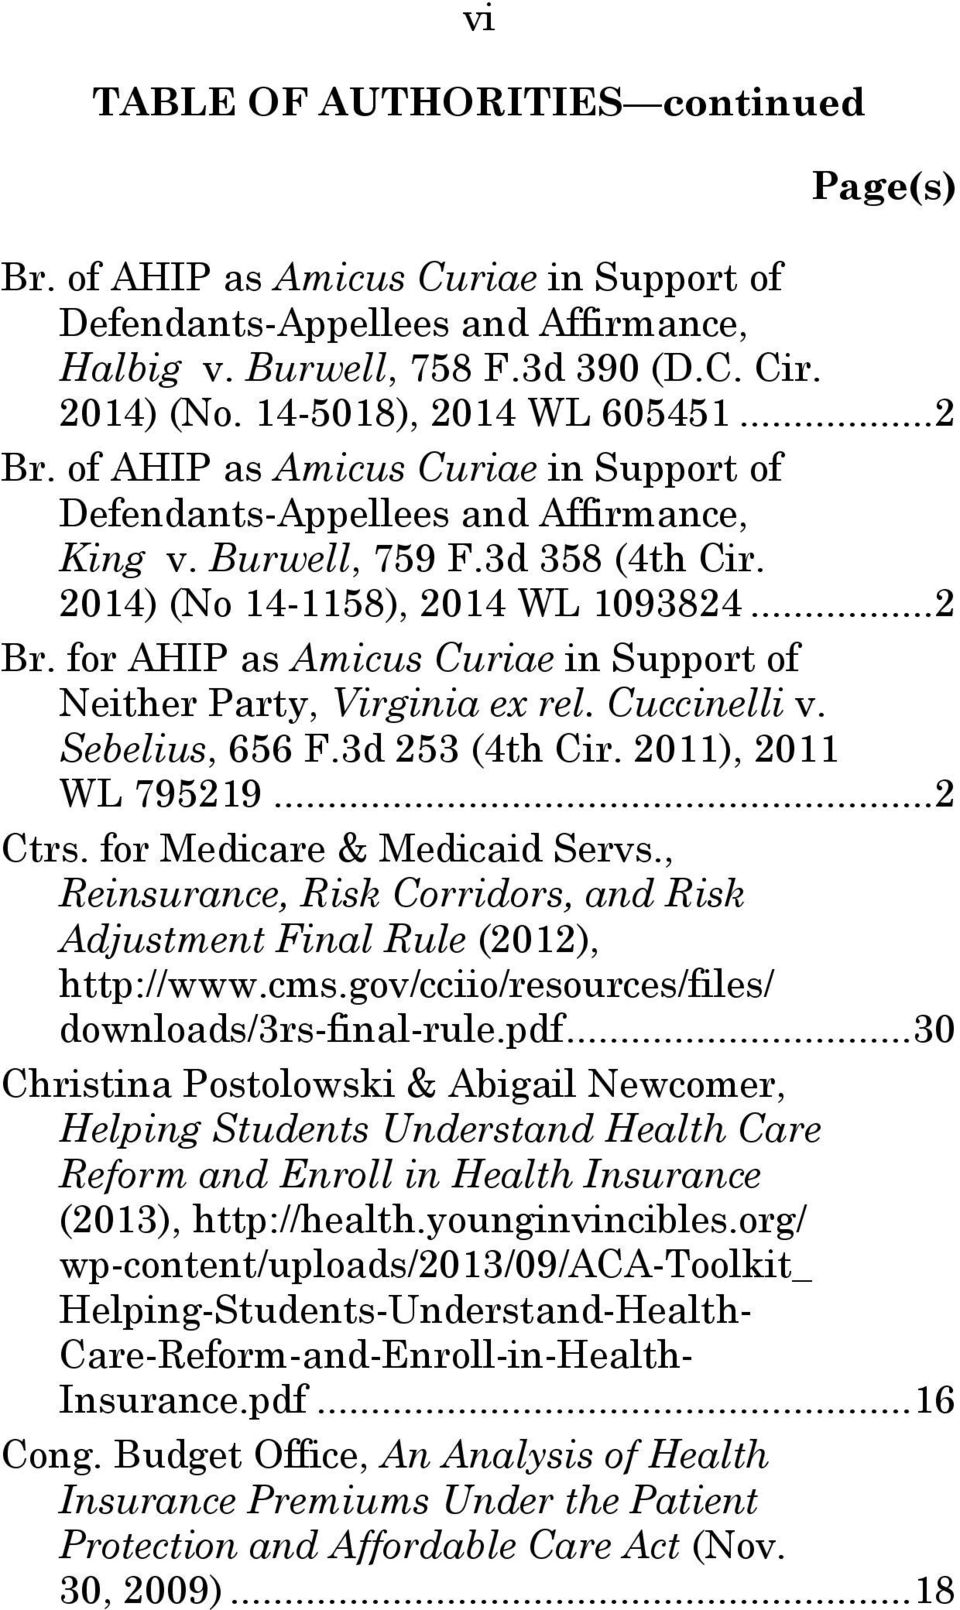 Cuccinelli v. Sebelius, 656 F.3d 253 (4th Cir. 2011), 2011 WL 795219...2 Ctrs. for Medicare & Medicaid Servs., Reinsurance, Risk Corridors, and Risk Adjustment Final Rule (2012), http://www.cms.